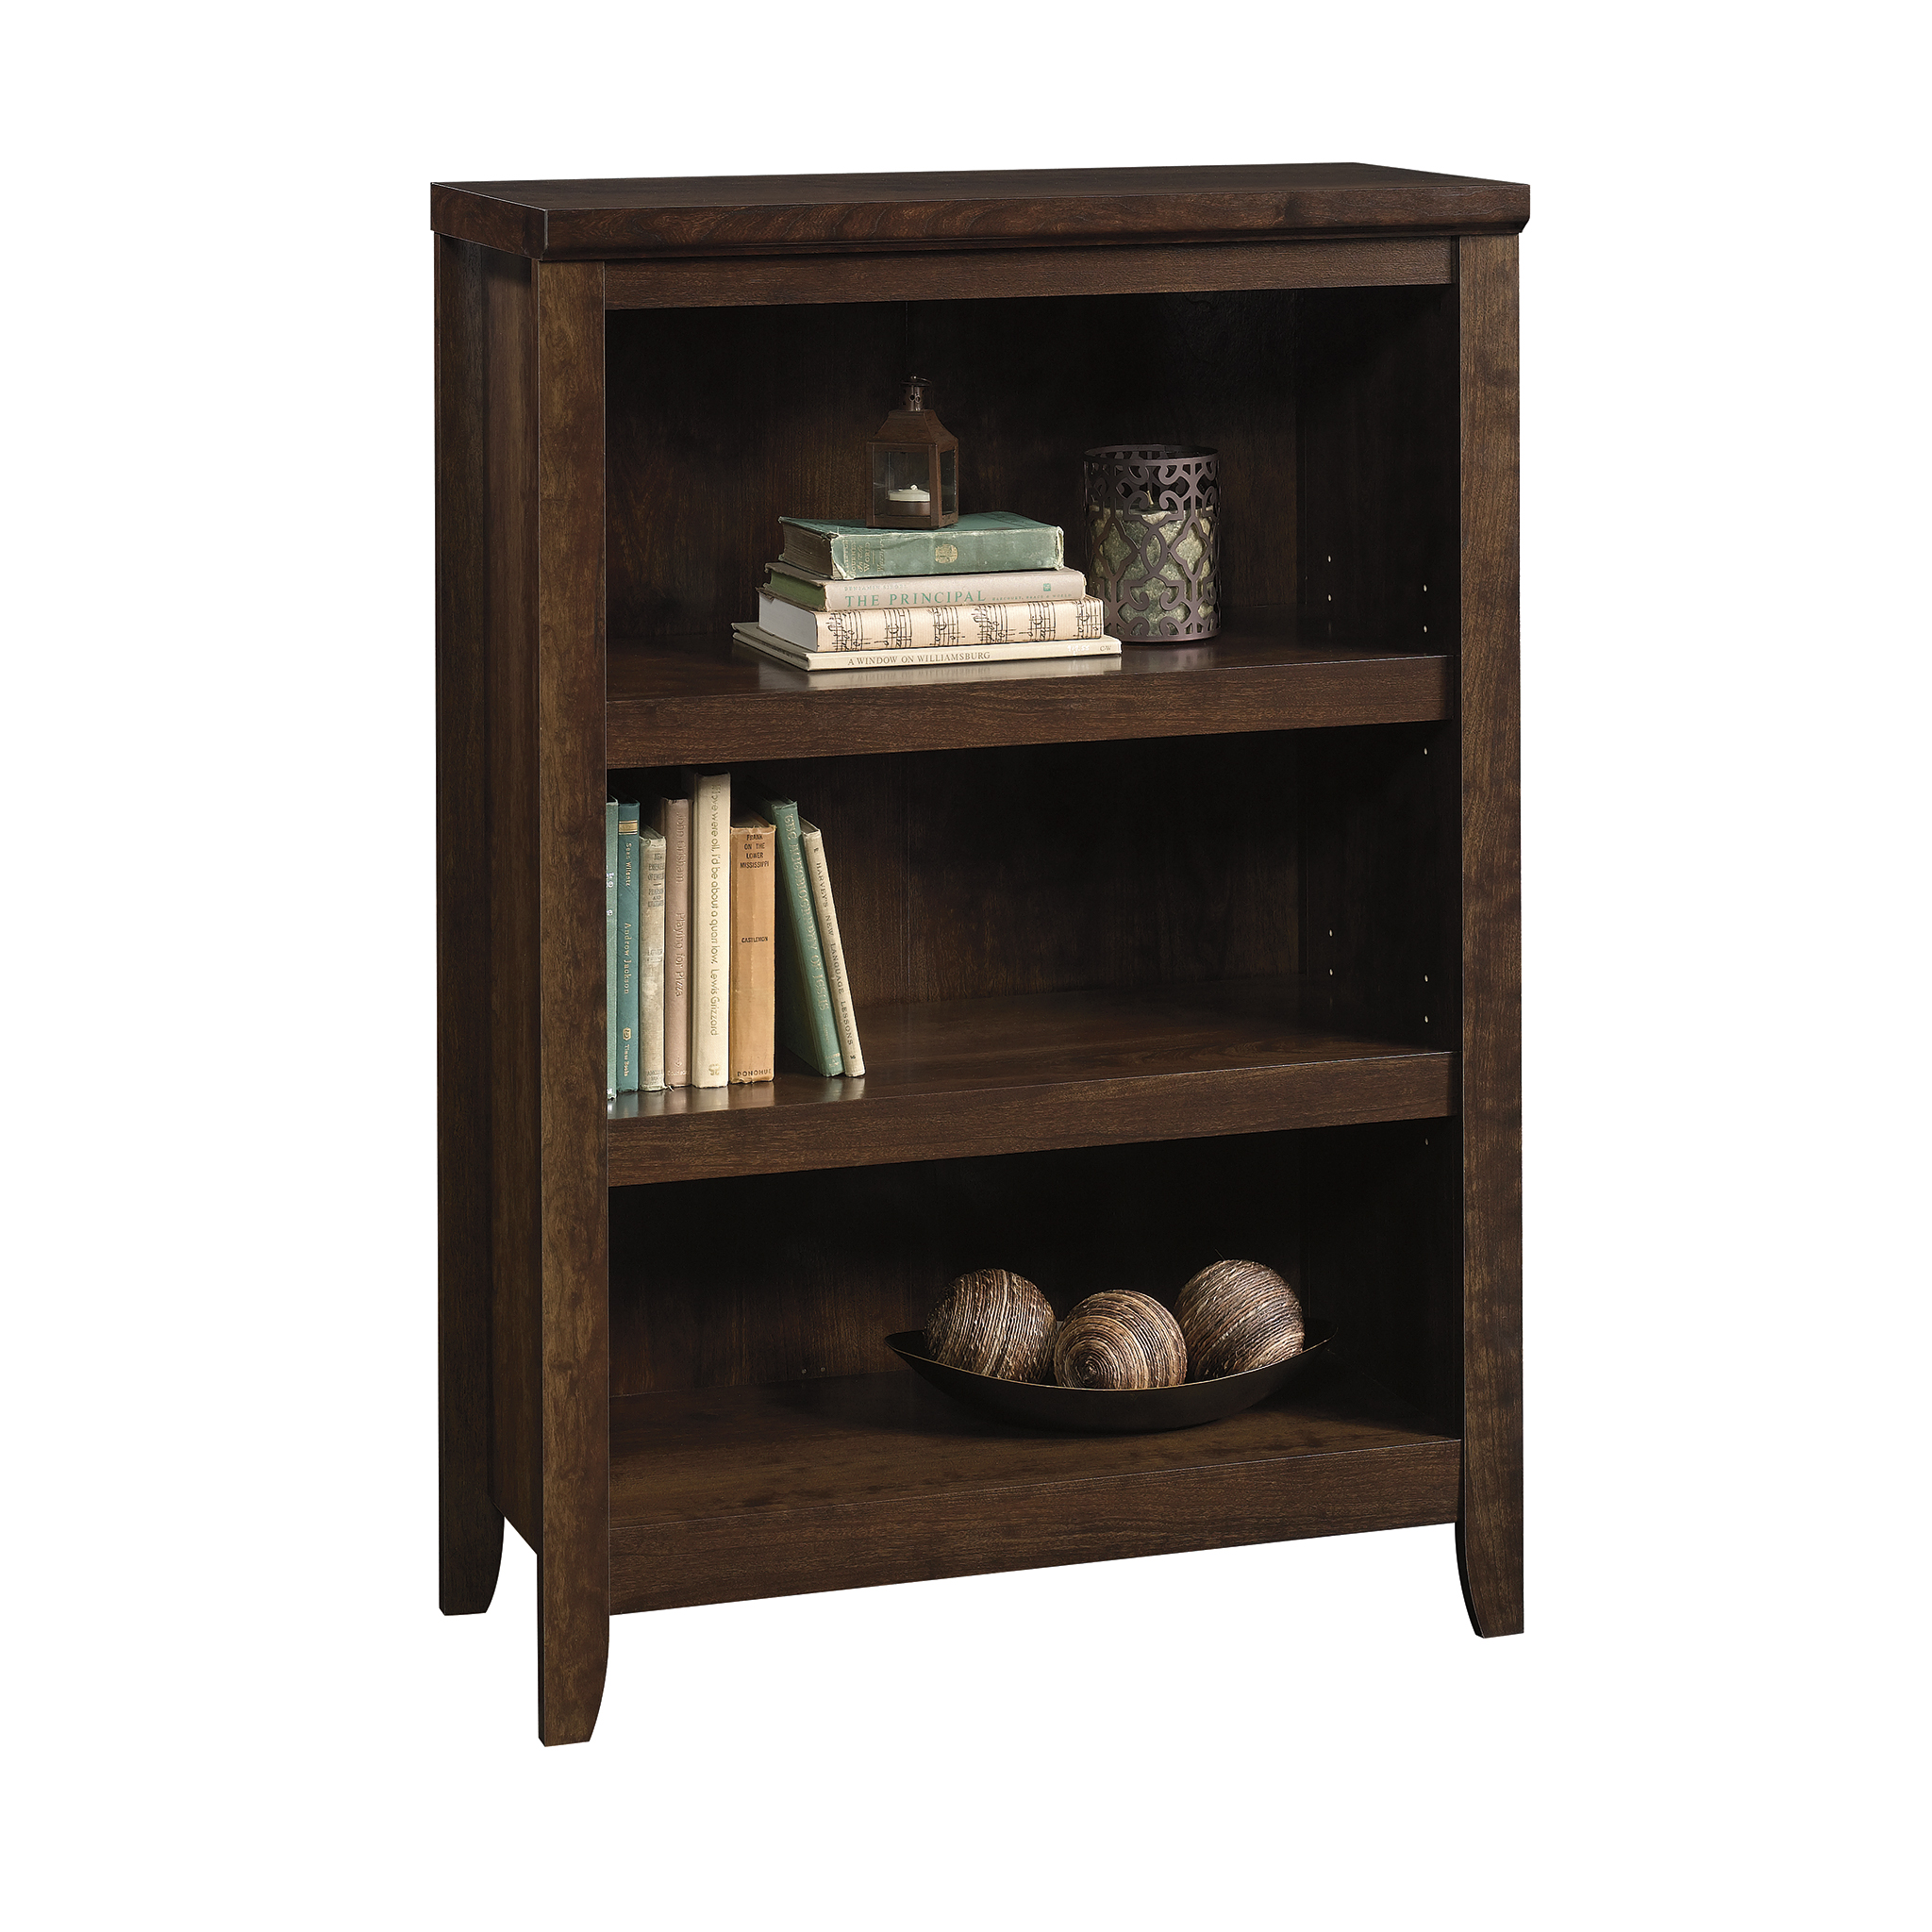 Better Homes & Gardens Parker 3 Shelf Bookcase, Estate Toffee Finish